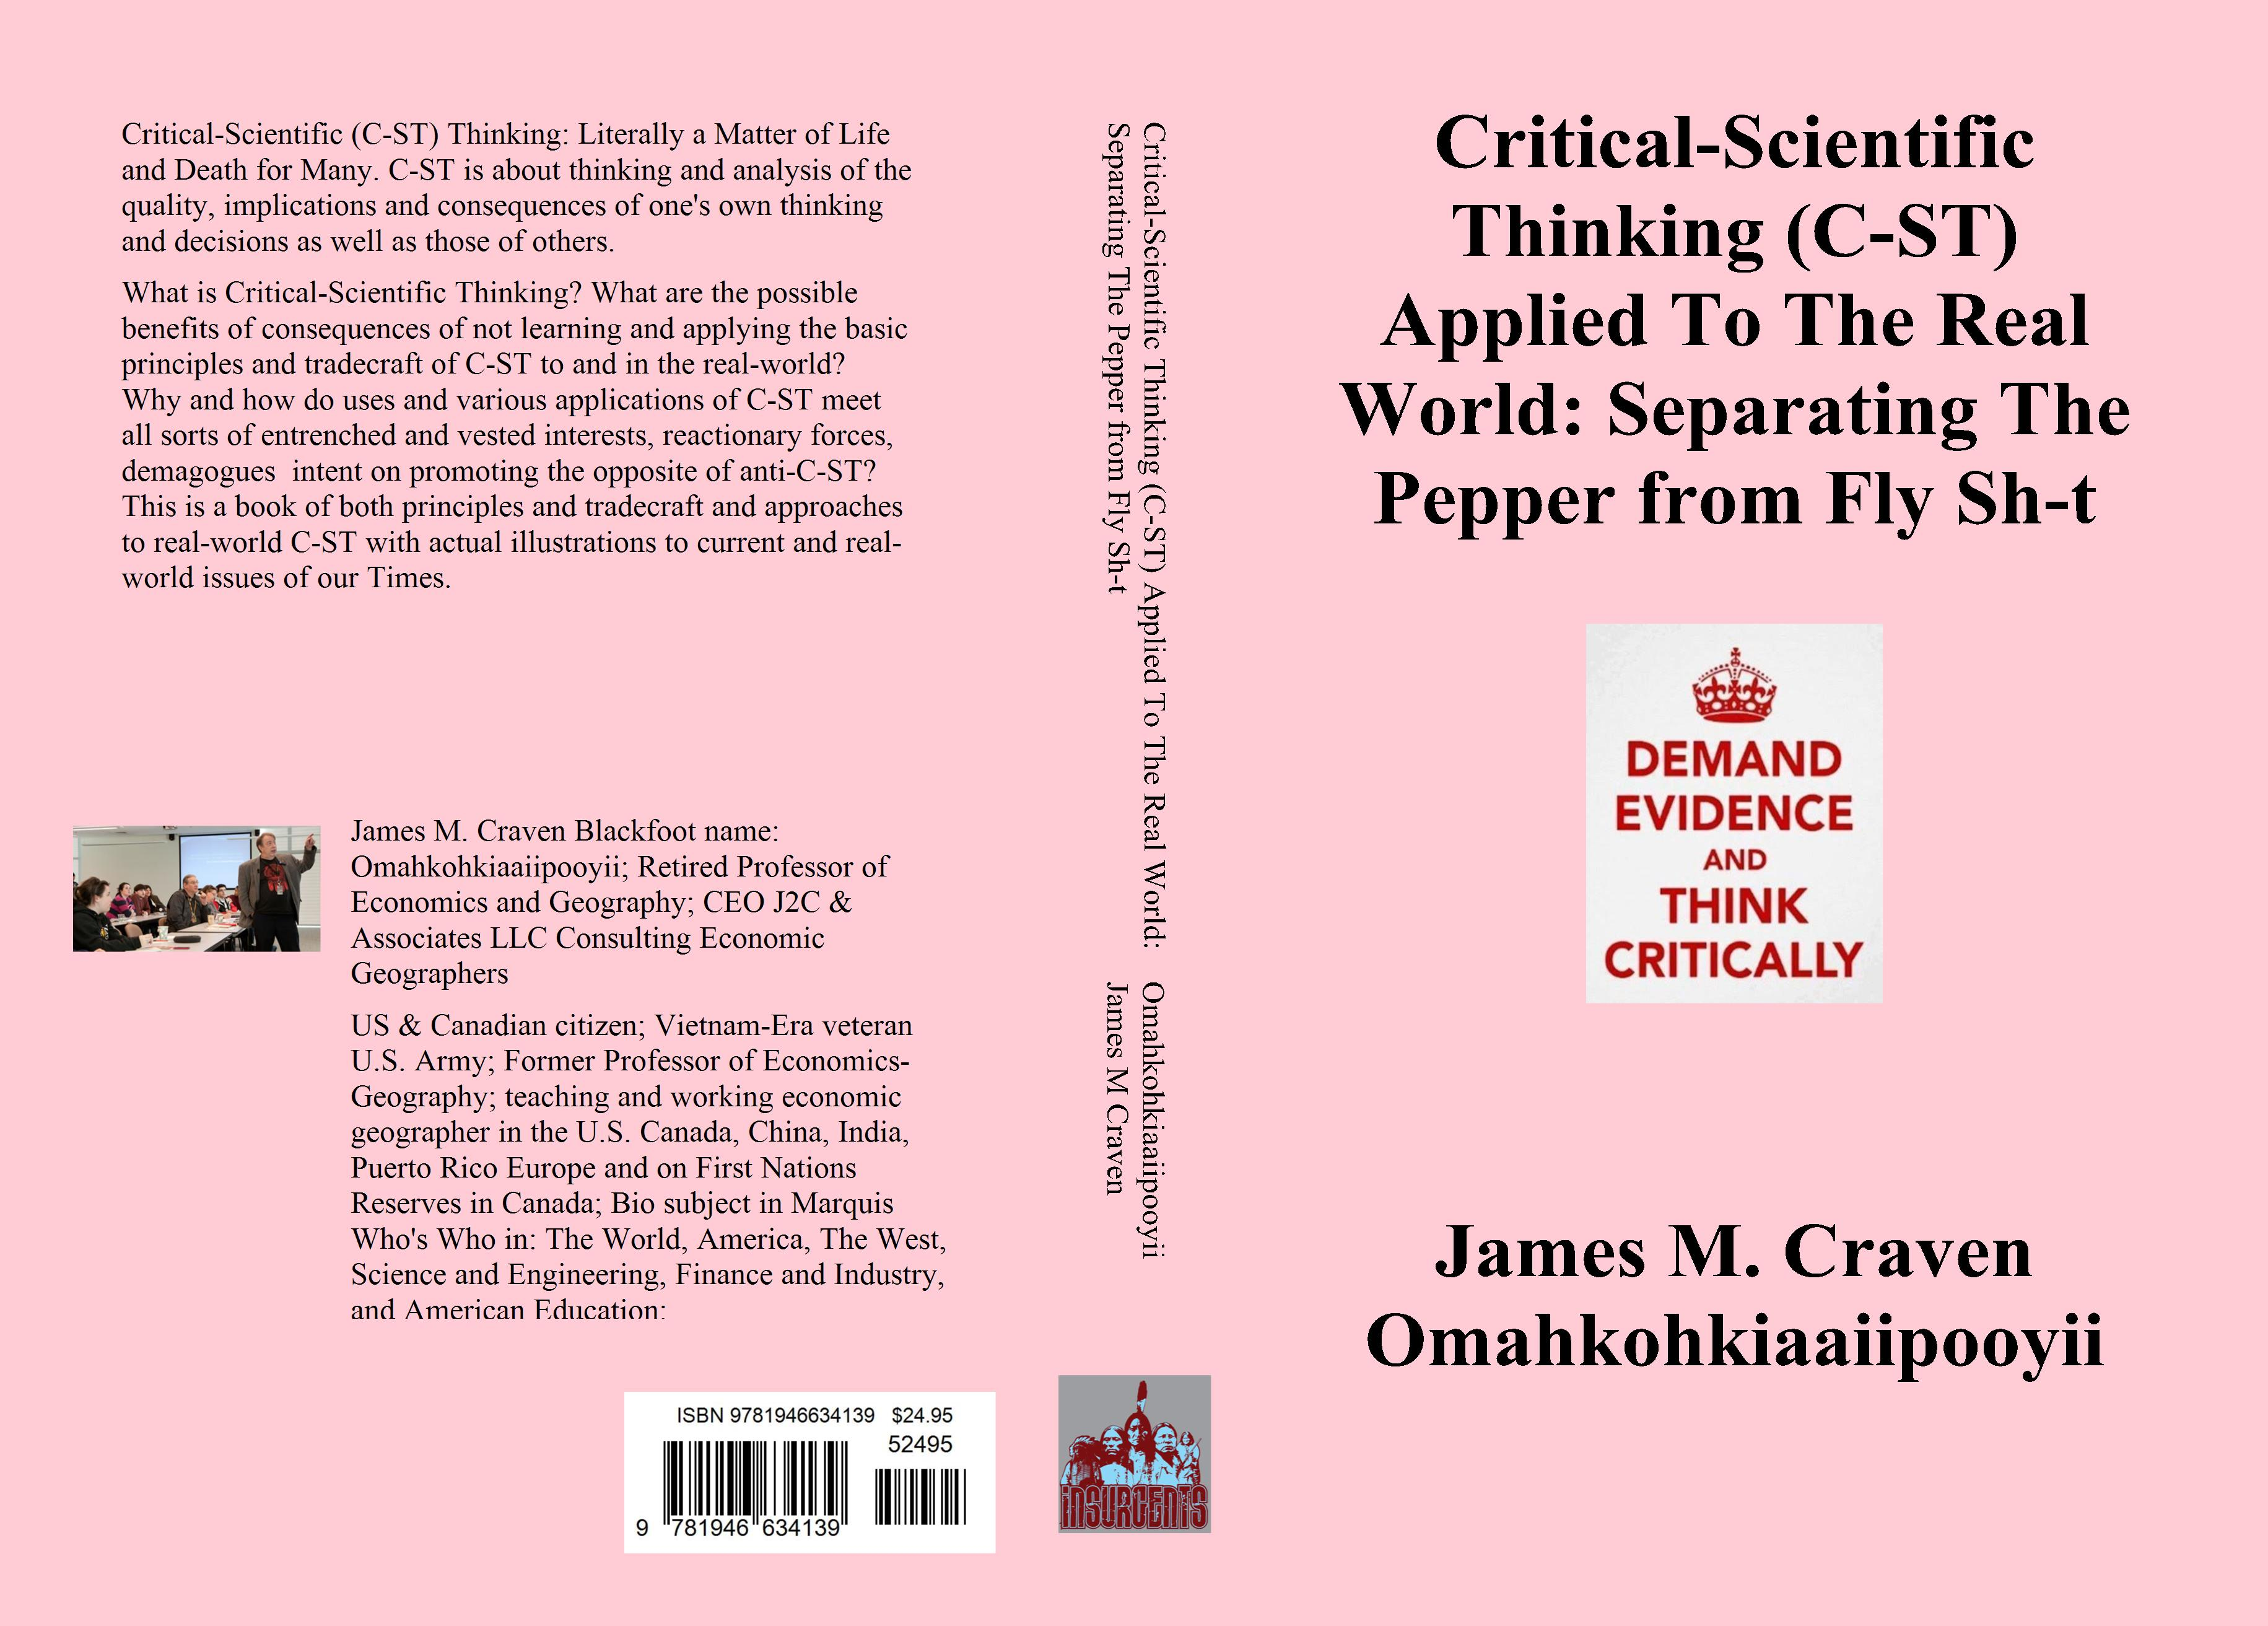 Critical-Scientific Thinking (C-ST) Applied To The Real World: Separating The Pepper from Fly Sh-t cover image